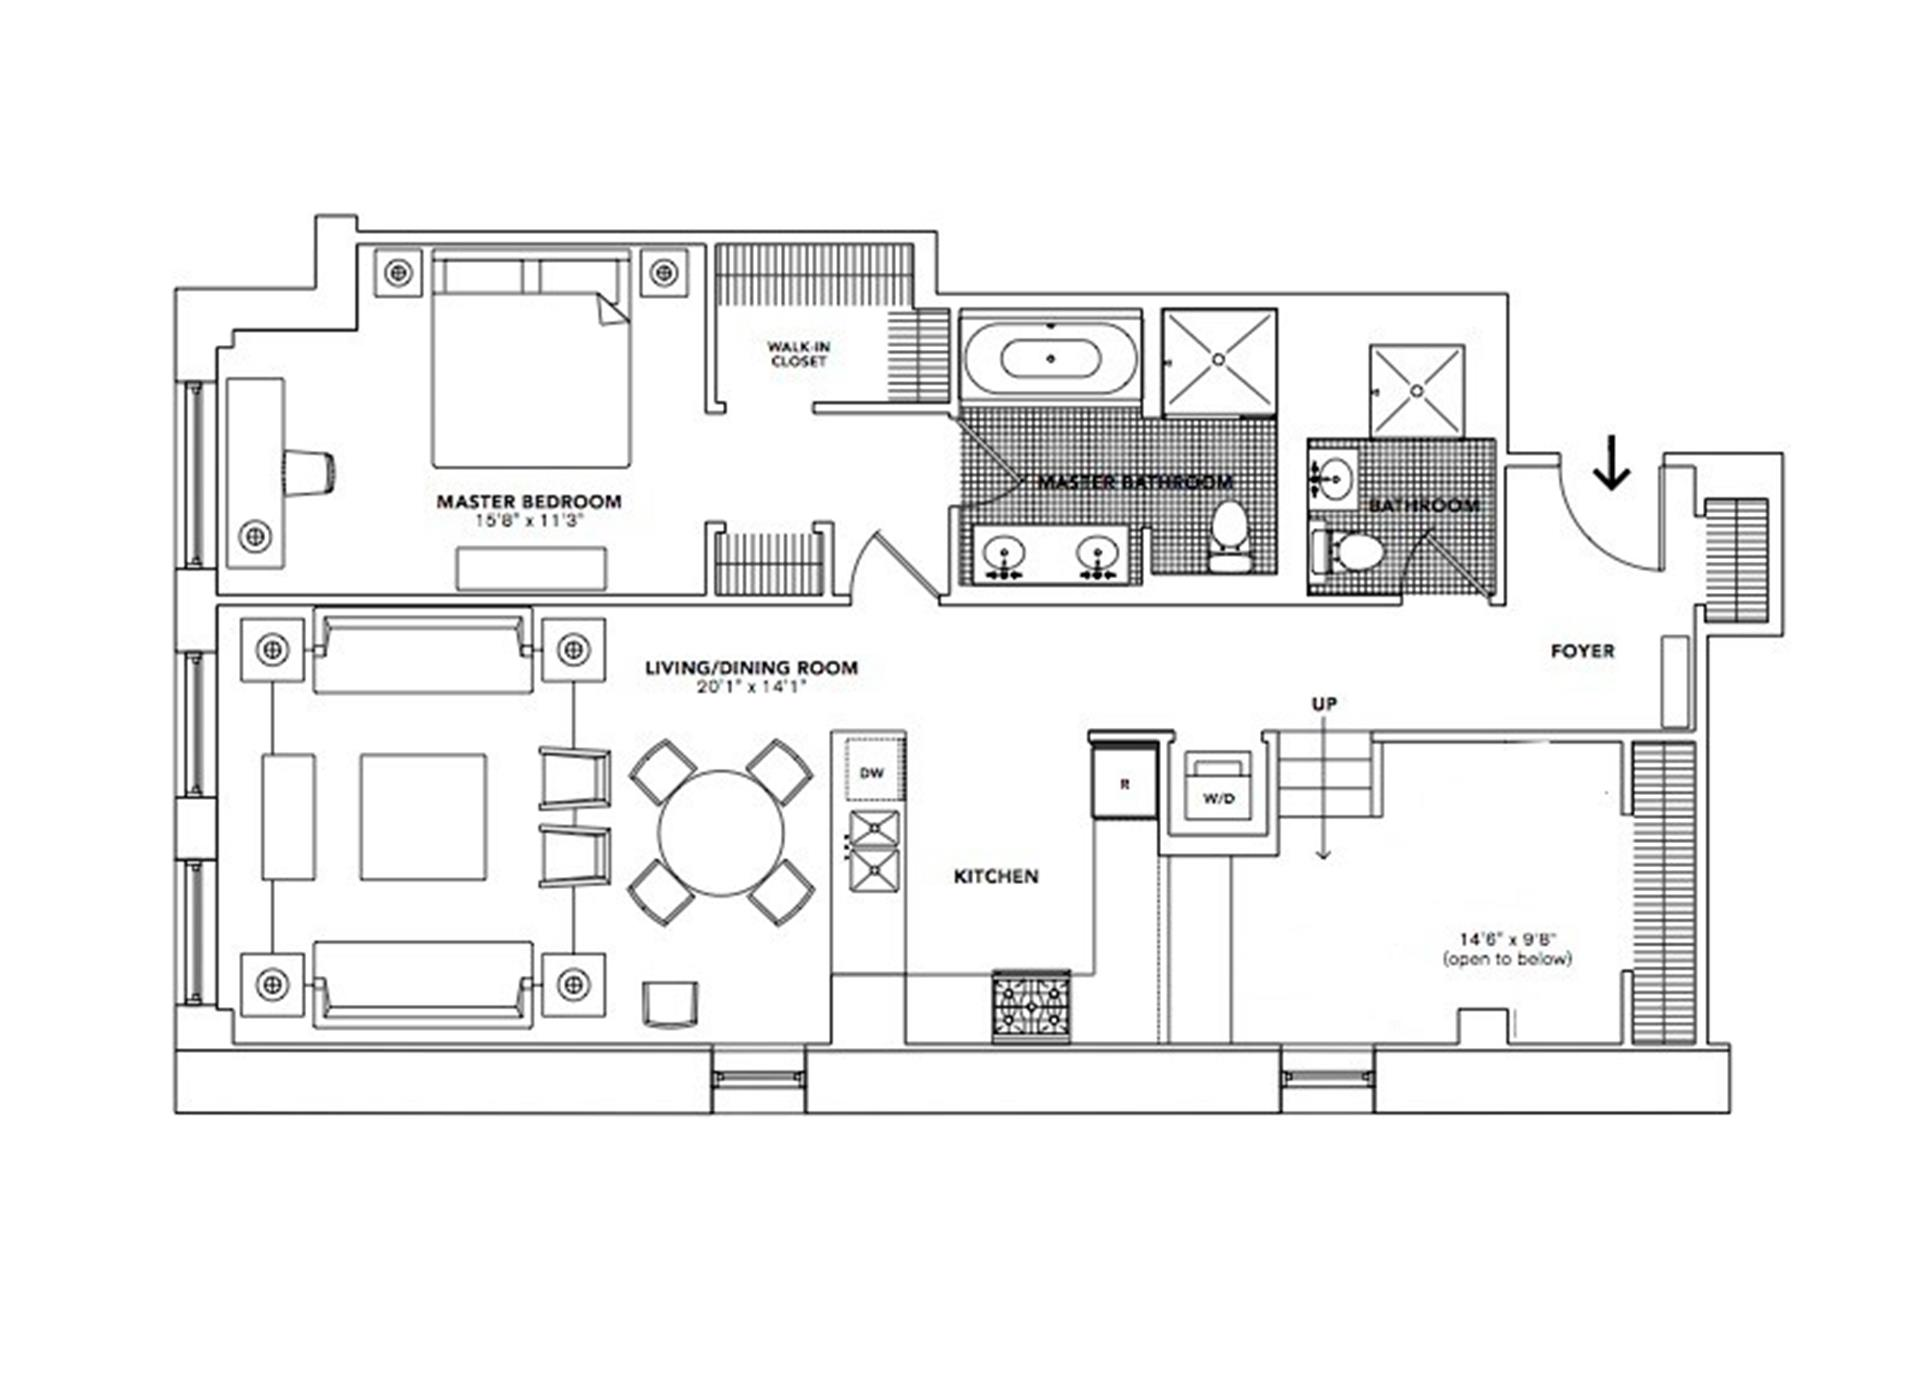 Floor plan of 416 Washington St, 3J - TriBeCa, New York